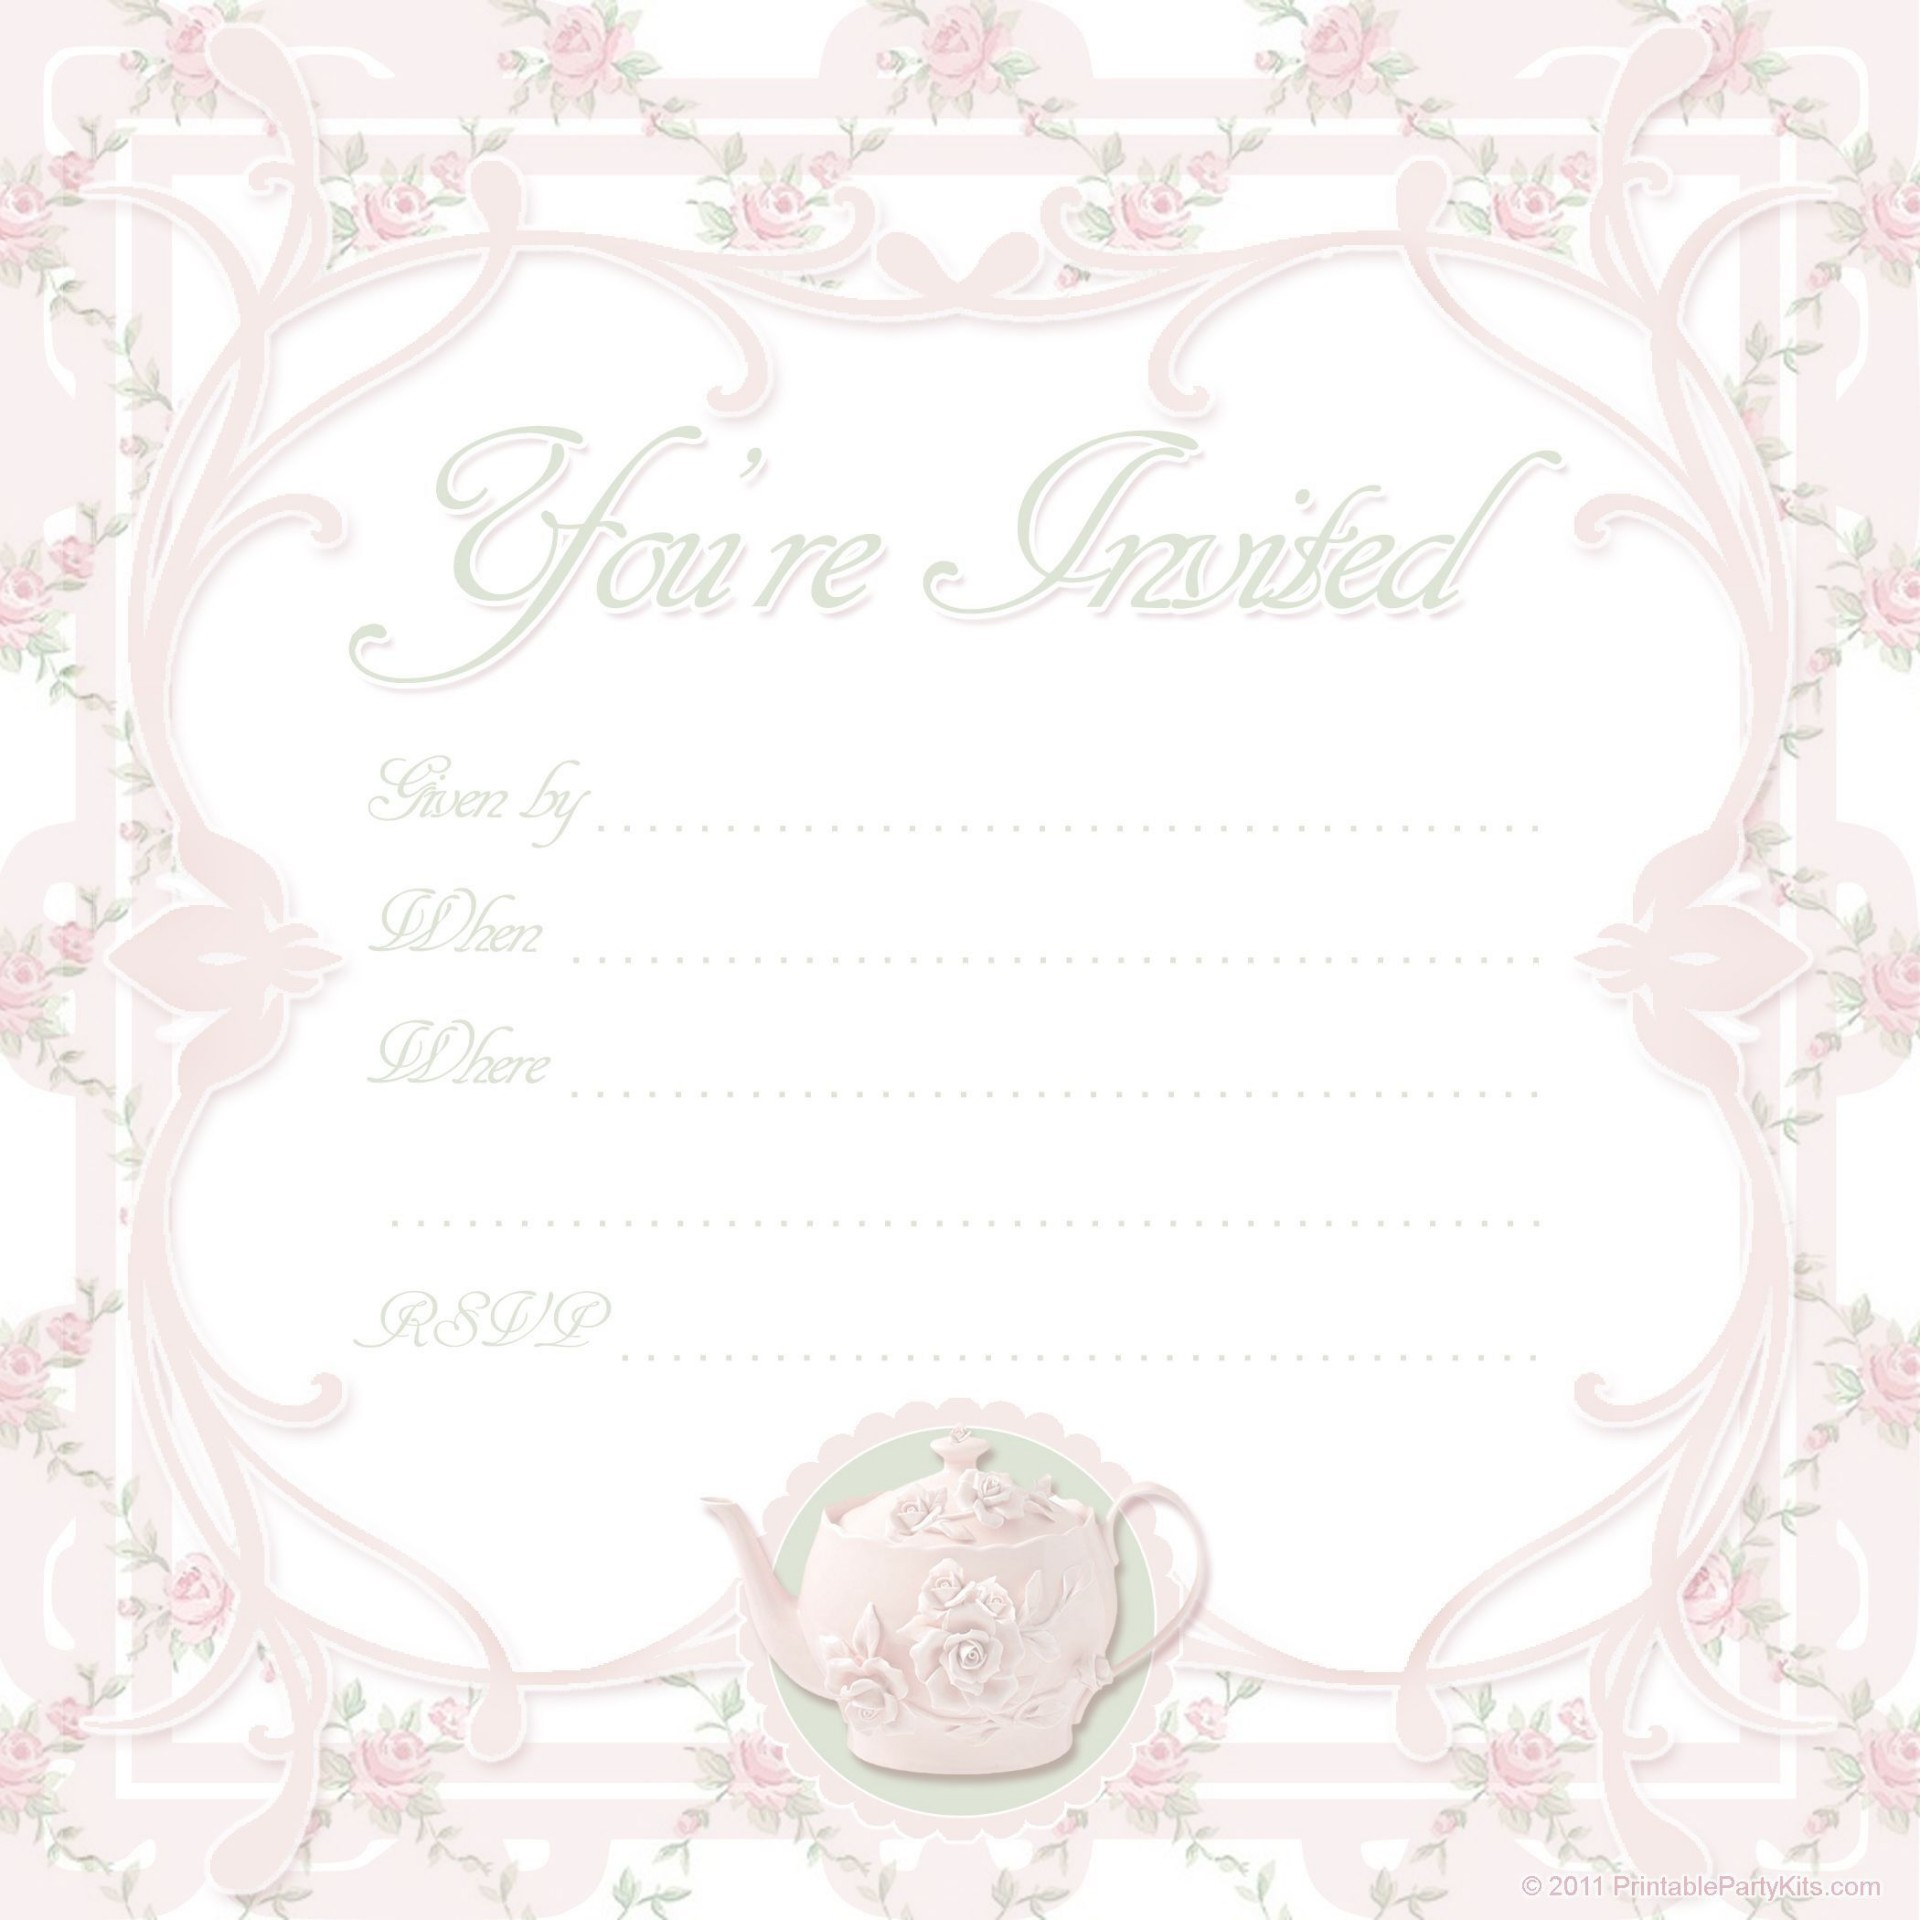 000 Awesome Tea Party Invitation Template High Def  Card Victorian Wording For Bridal Shower1920